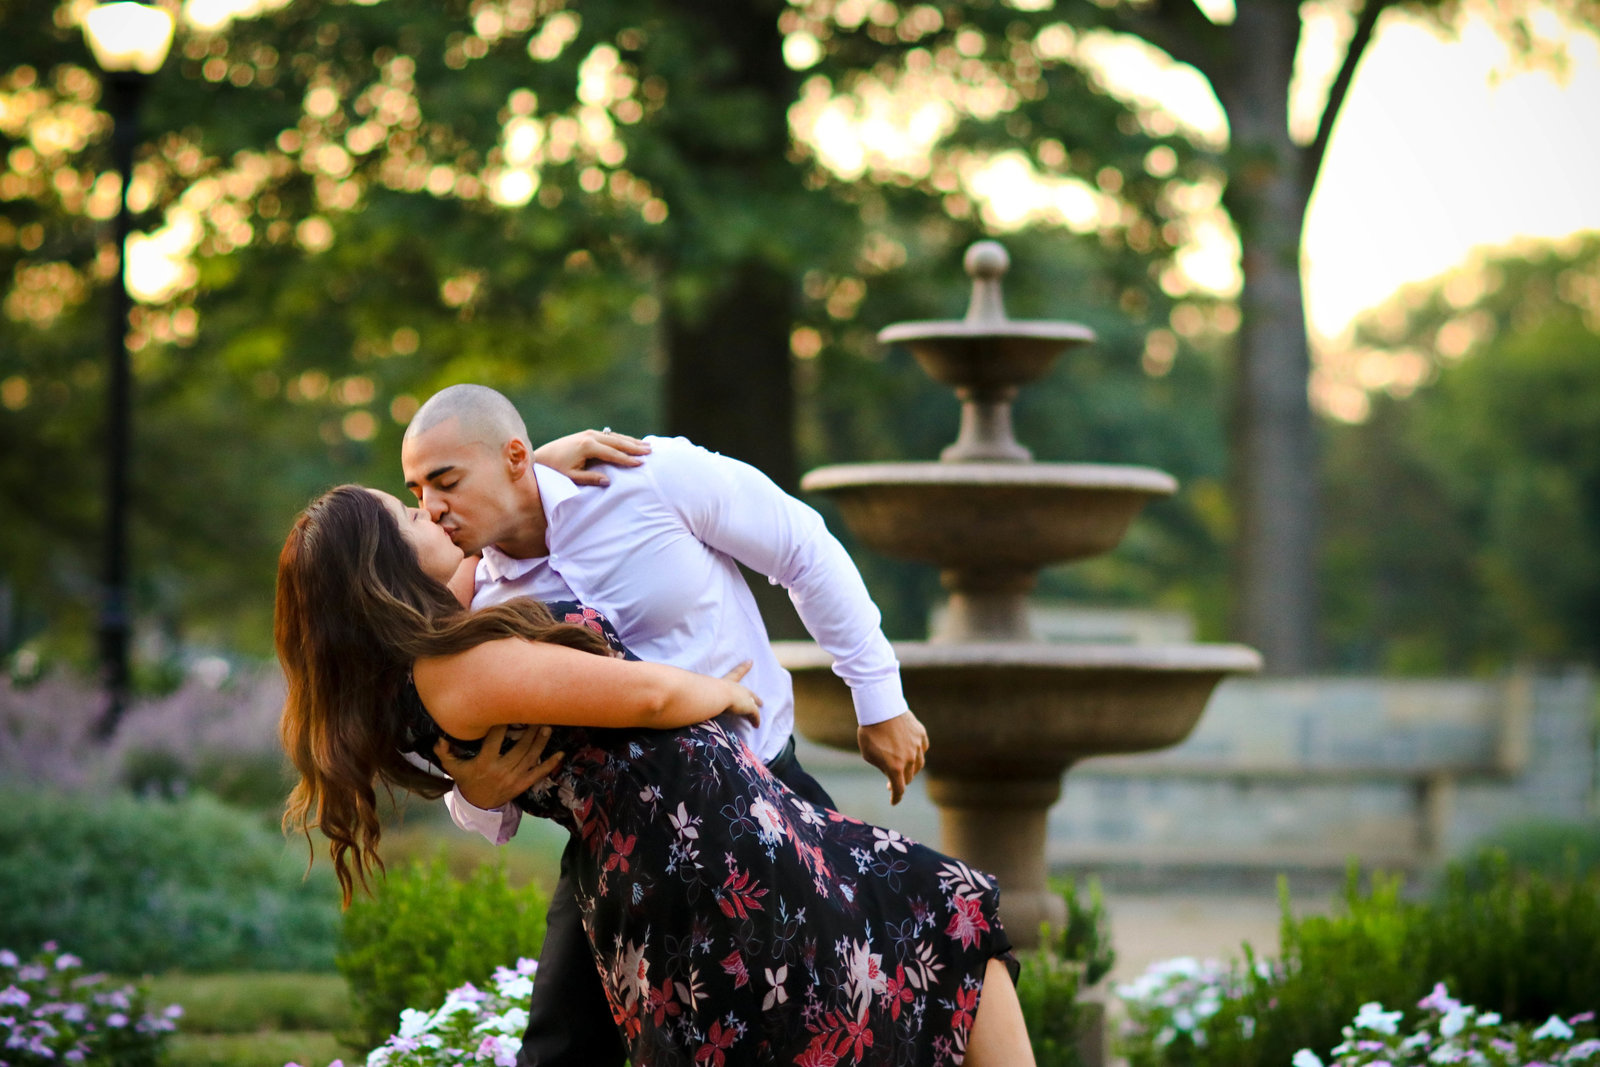 warinanco-park-engagement-photos-eveliophoto-127